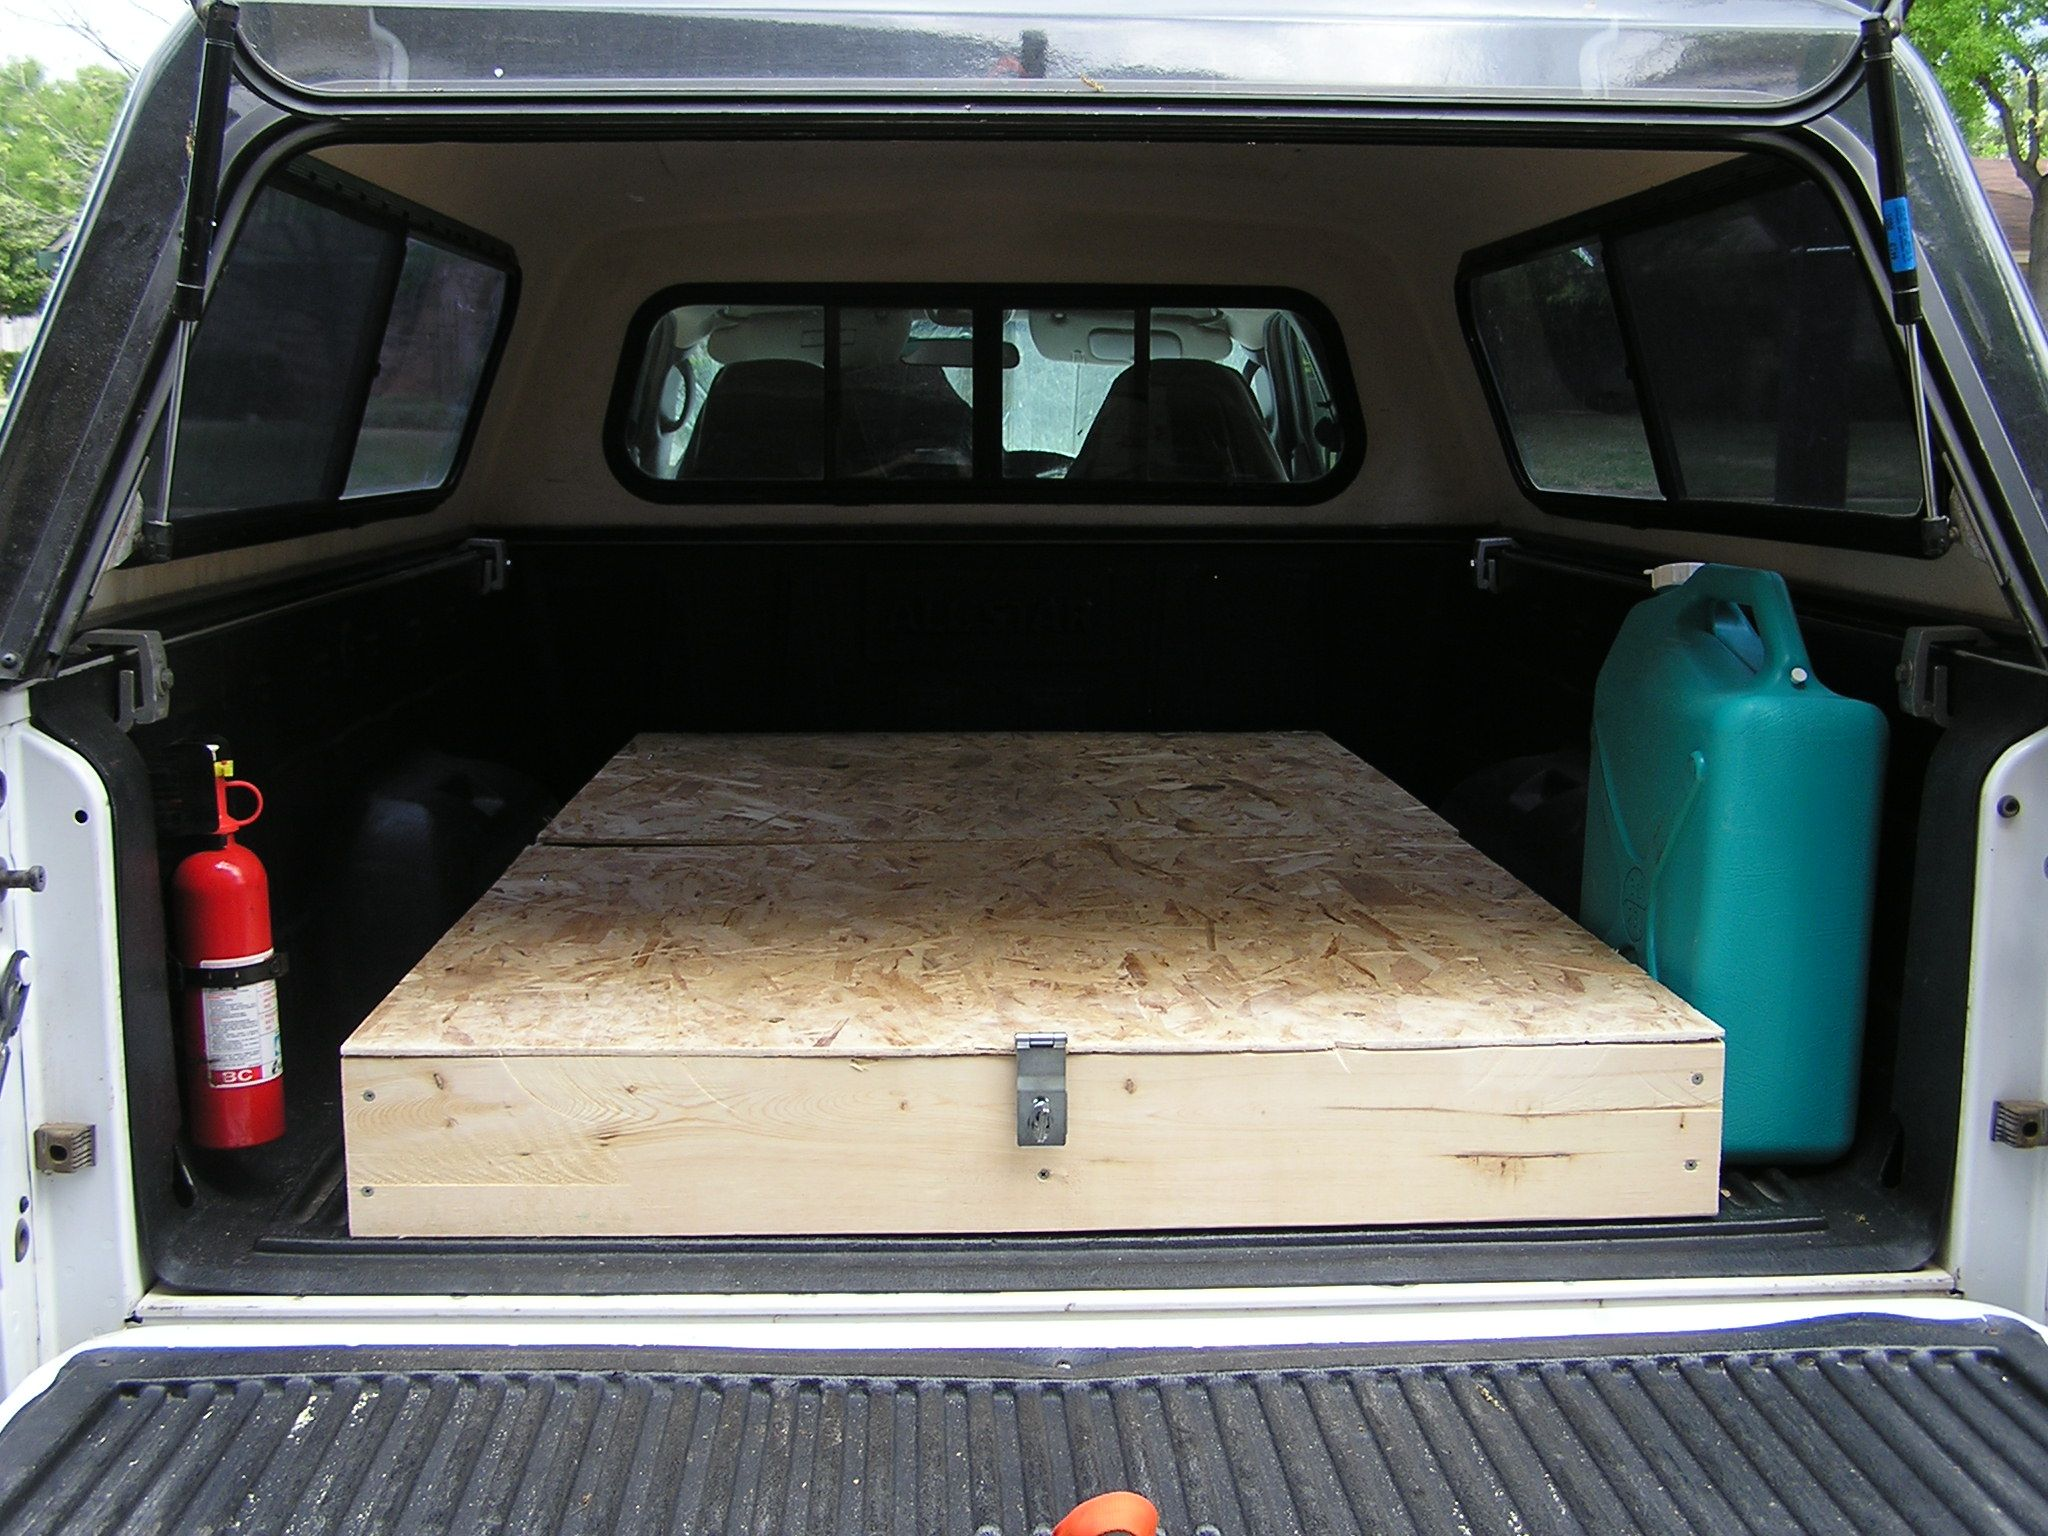 Homemade camping truck bed storage and sleeping platform truck bed storage truck bed and camping - Truck bed storage ideas ...